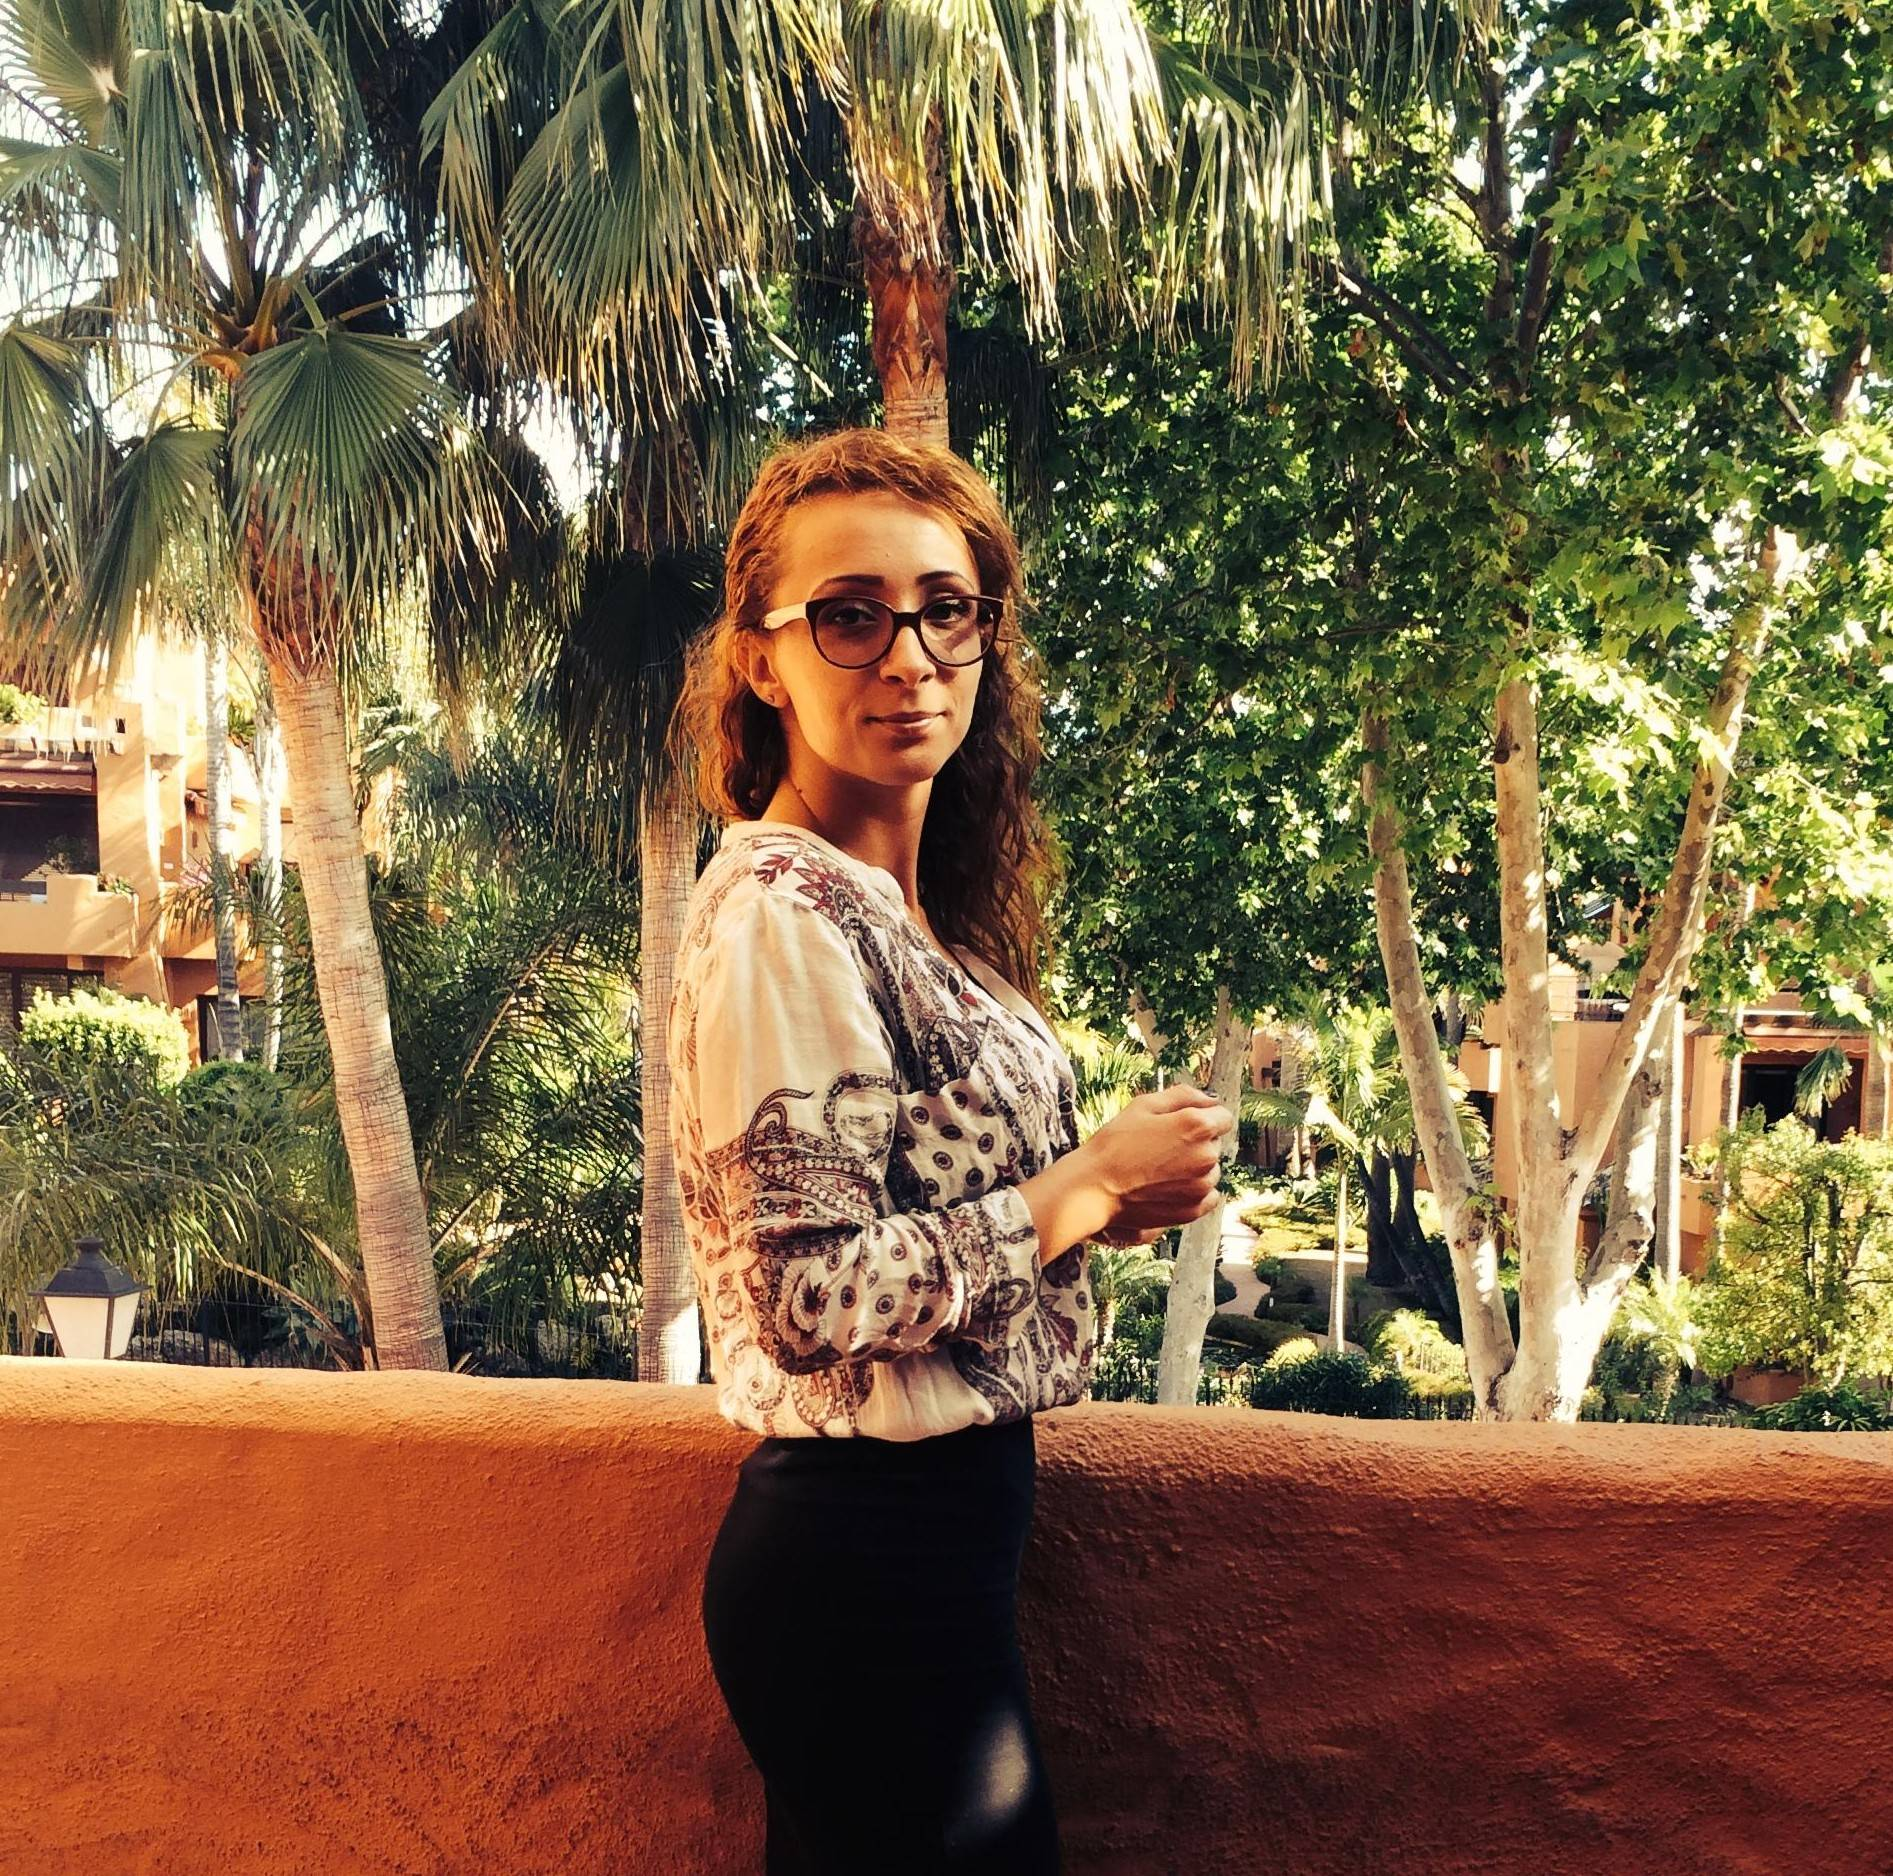 19 Things I Have Gained From My MBA At Schellhammer Business School in Marbella